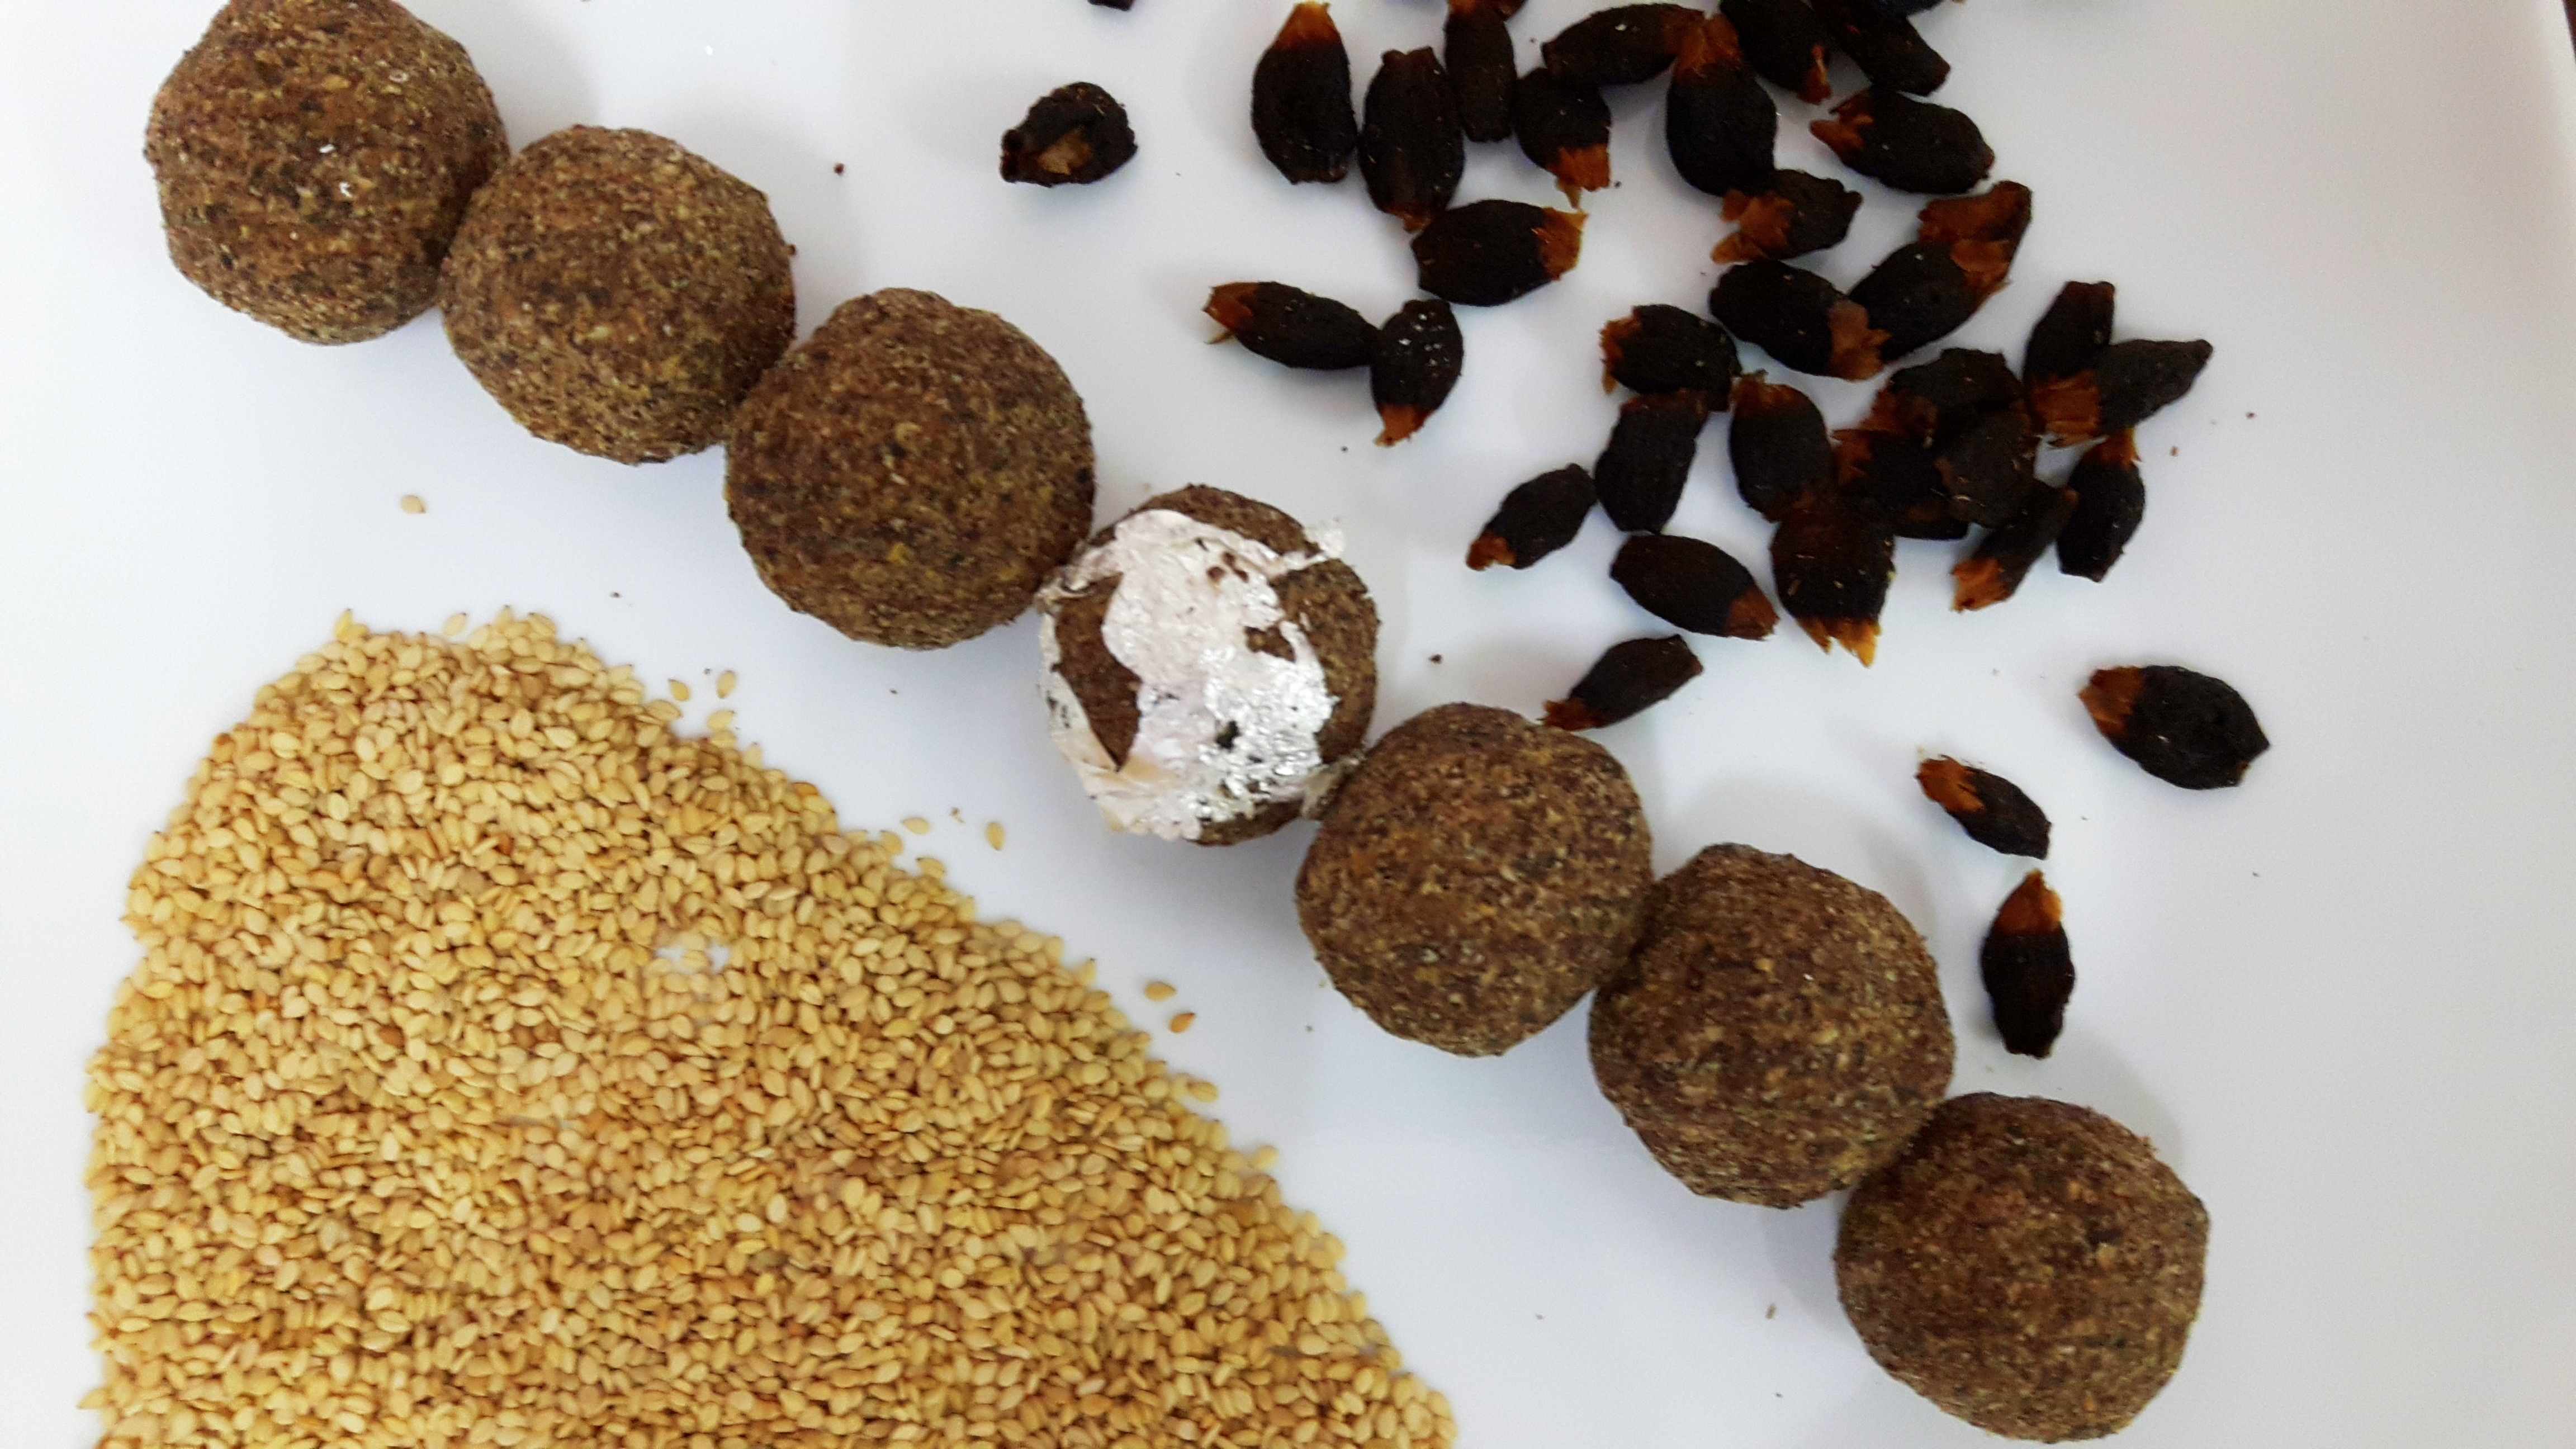 Mahua and til ka laddu ((Madhuca longfolia and sesame seed ball)